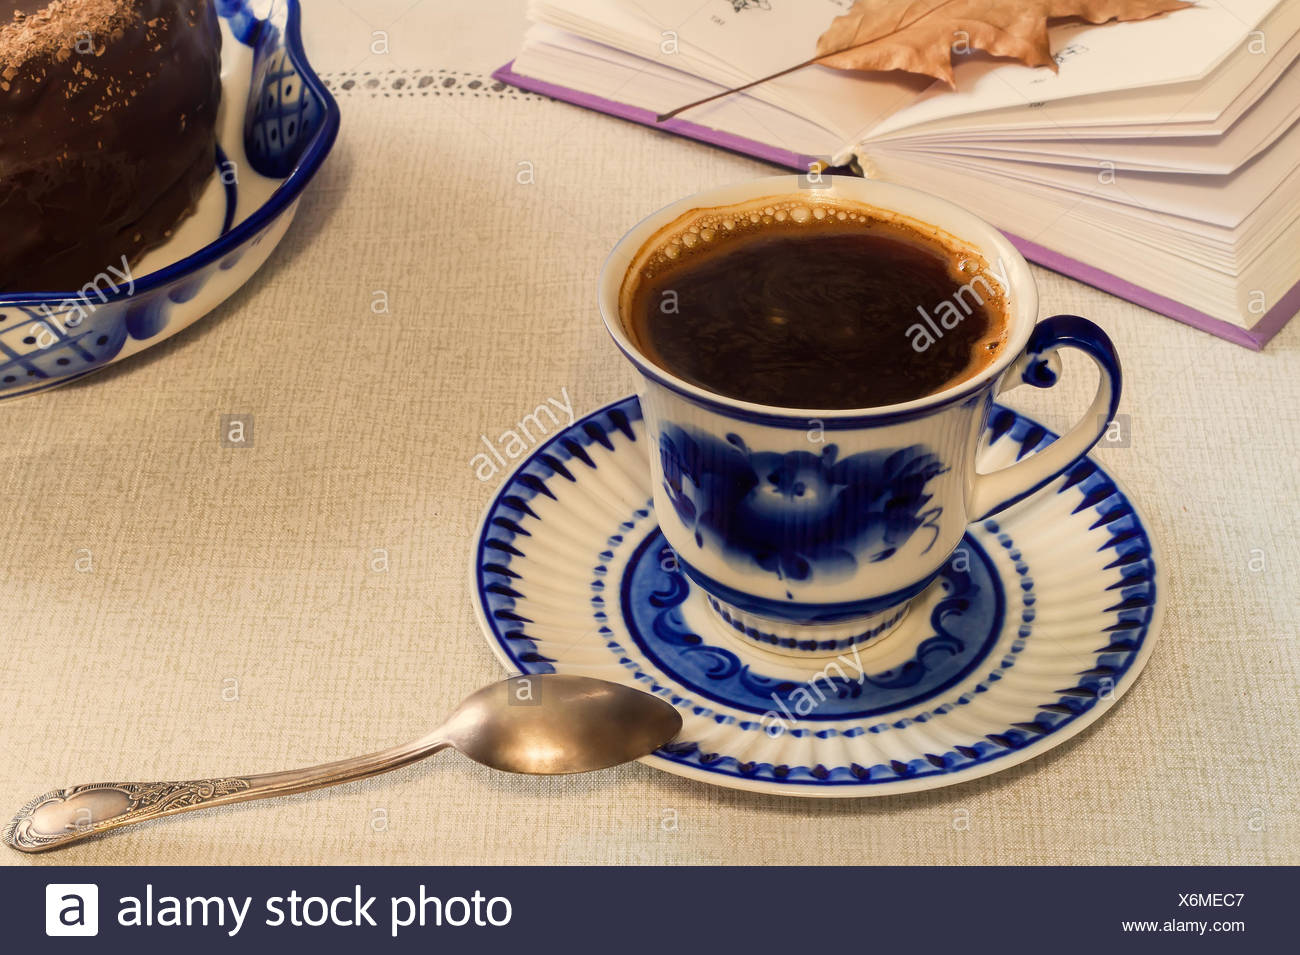 A Cup of black coffee and cake on the table. - Stock Image